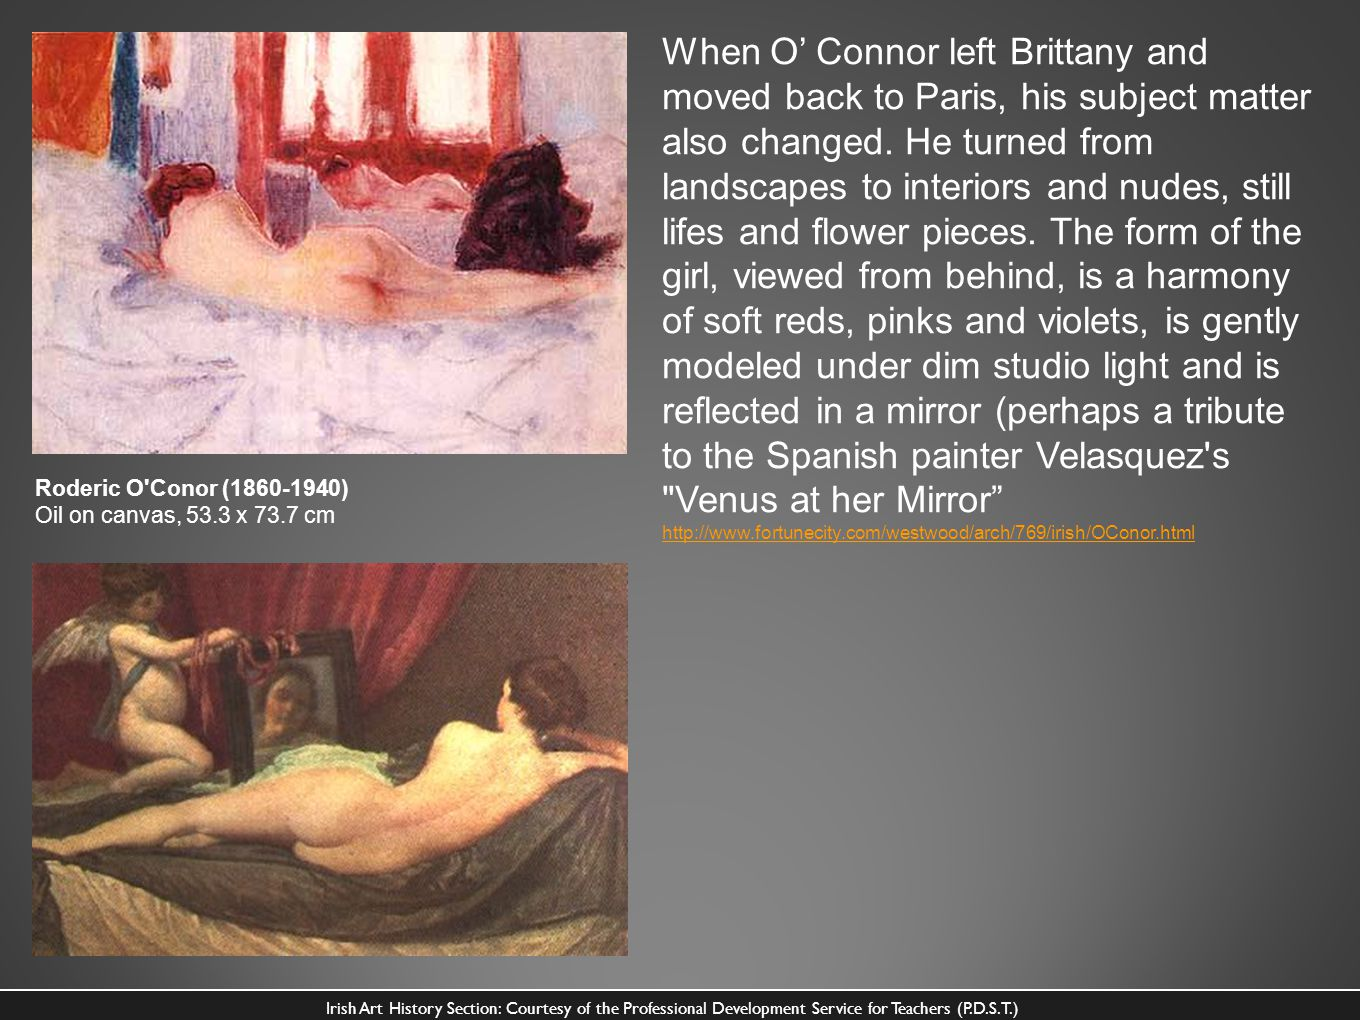 When O Connor left Brittany and moved back to Paris, his subject matter also changed. He turned from landscapes to interiors and nudes, still lifes an